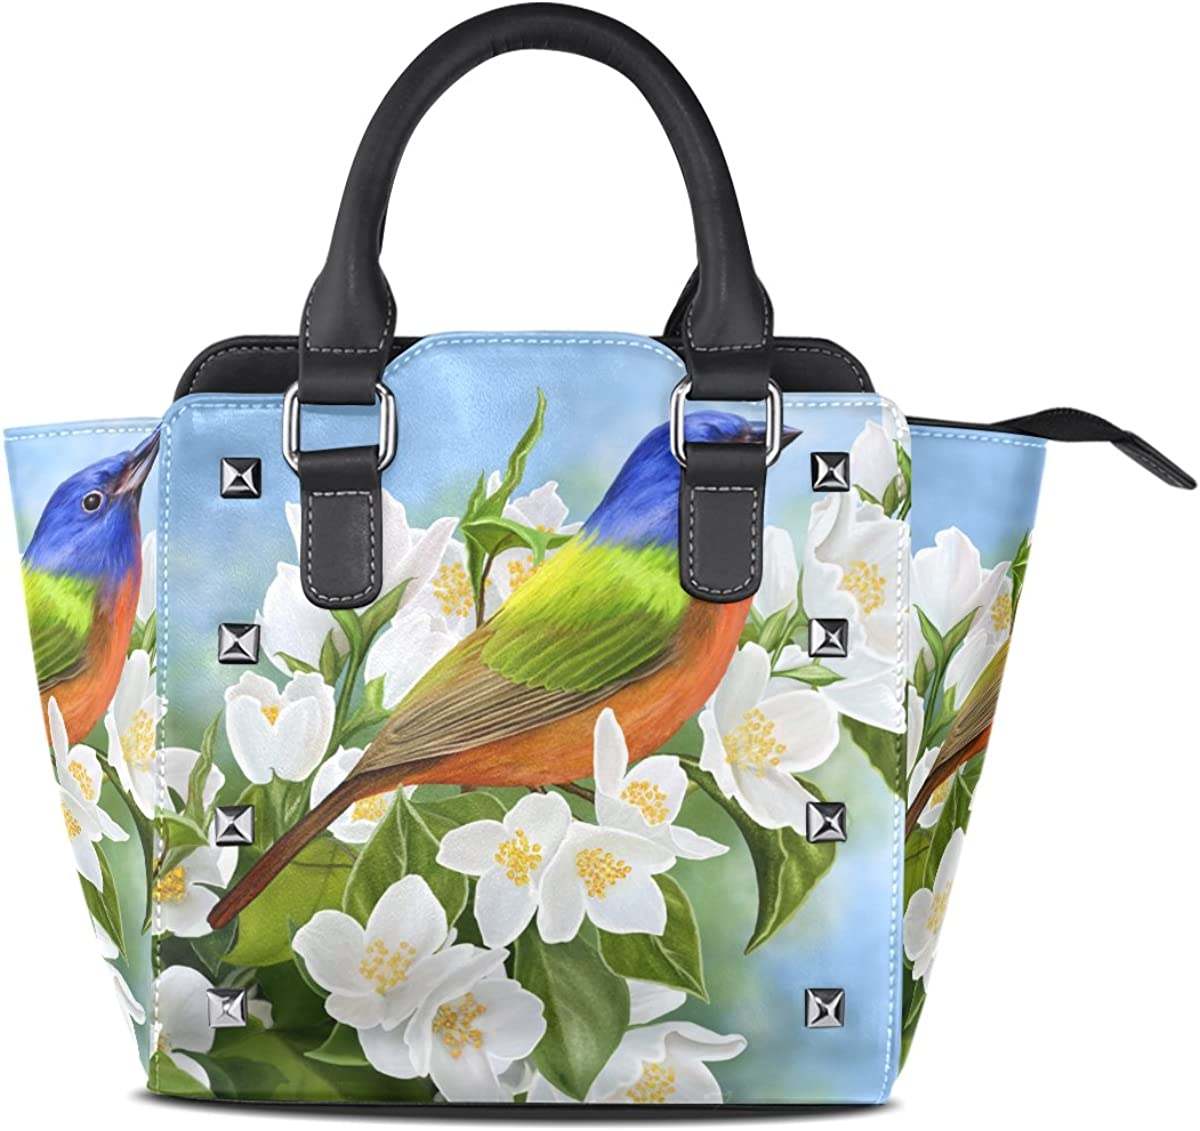 Womens Top Handle Satchel Handbag Cute Bird Jasmine Branch Ladies PU Leather Shoulder Bag Crossbody Bag